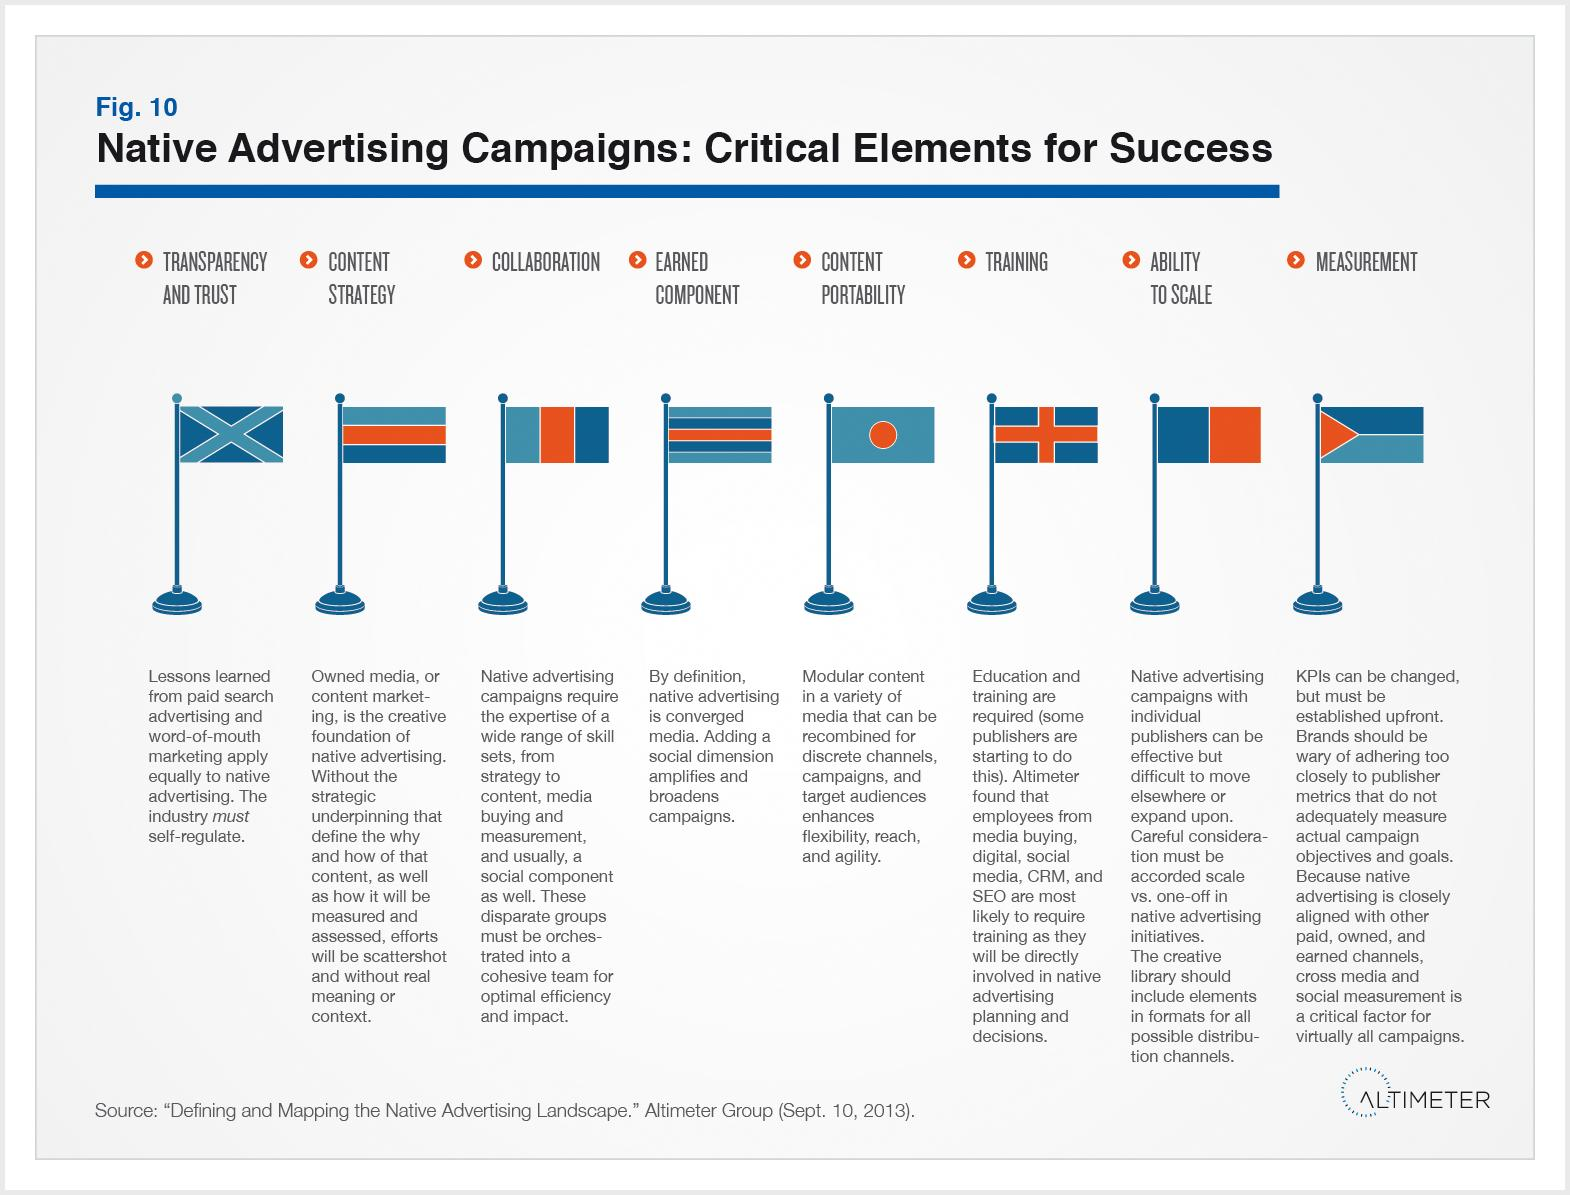 Native Advertising Campaign Success Elements